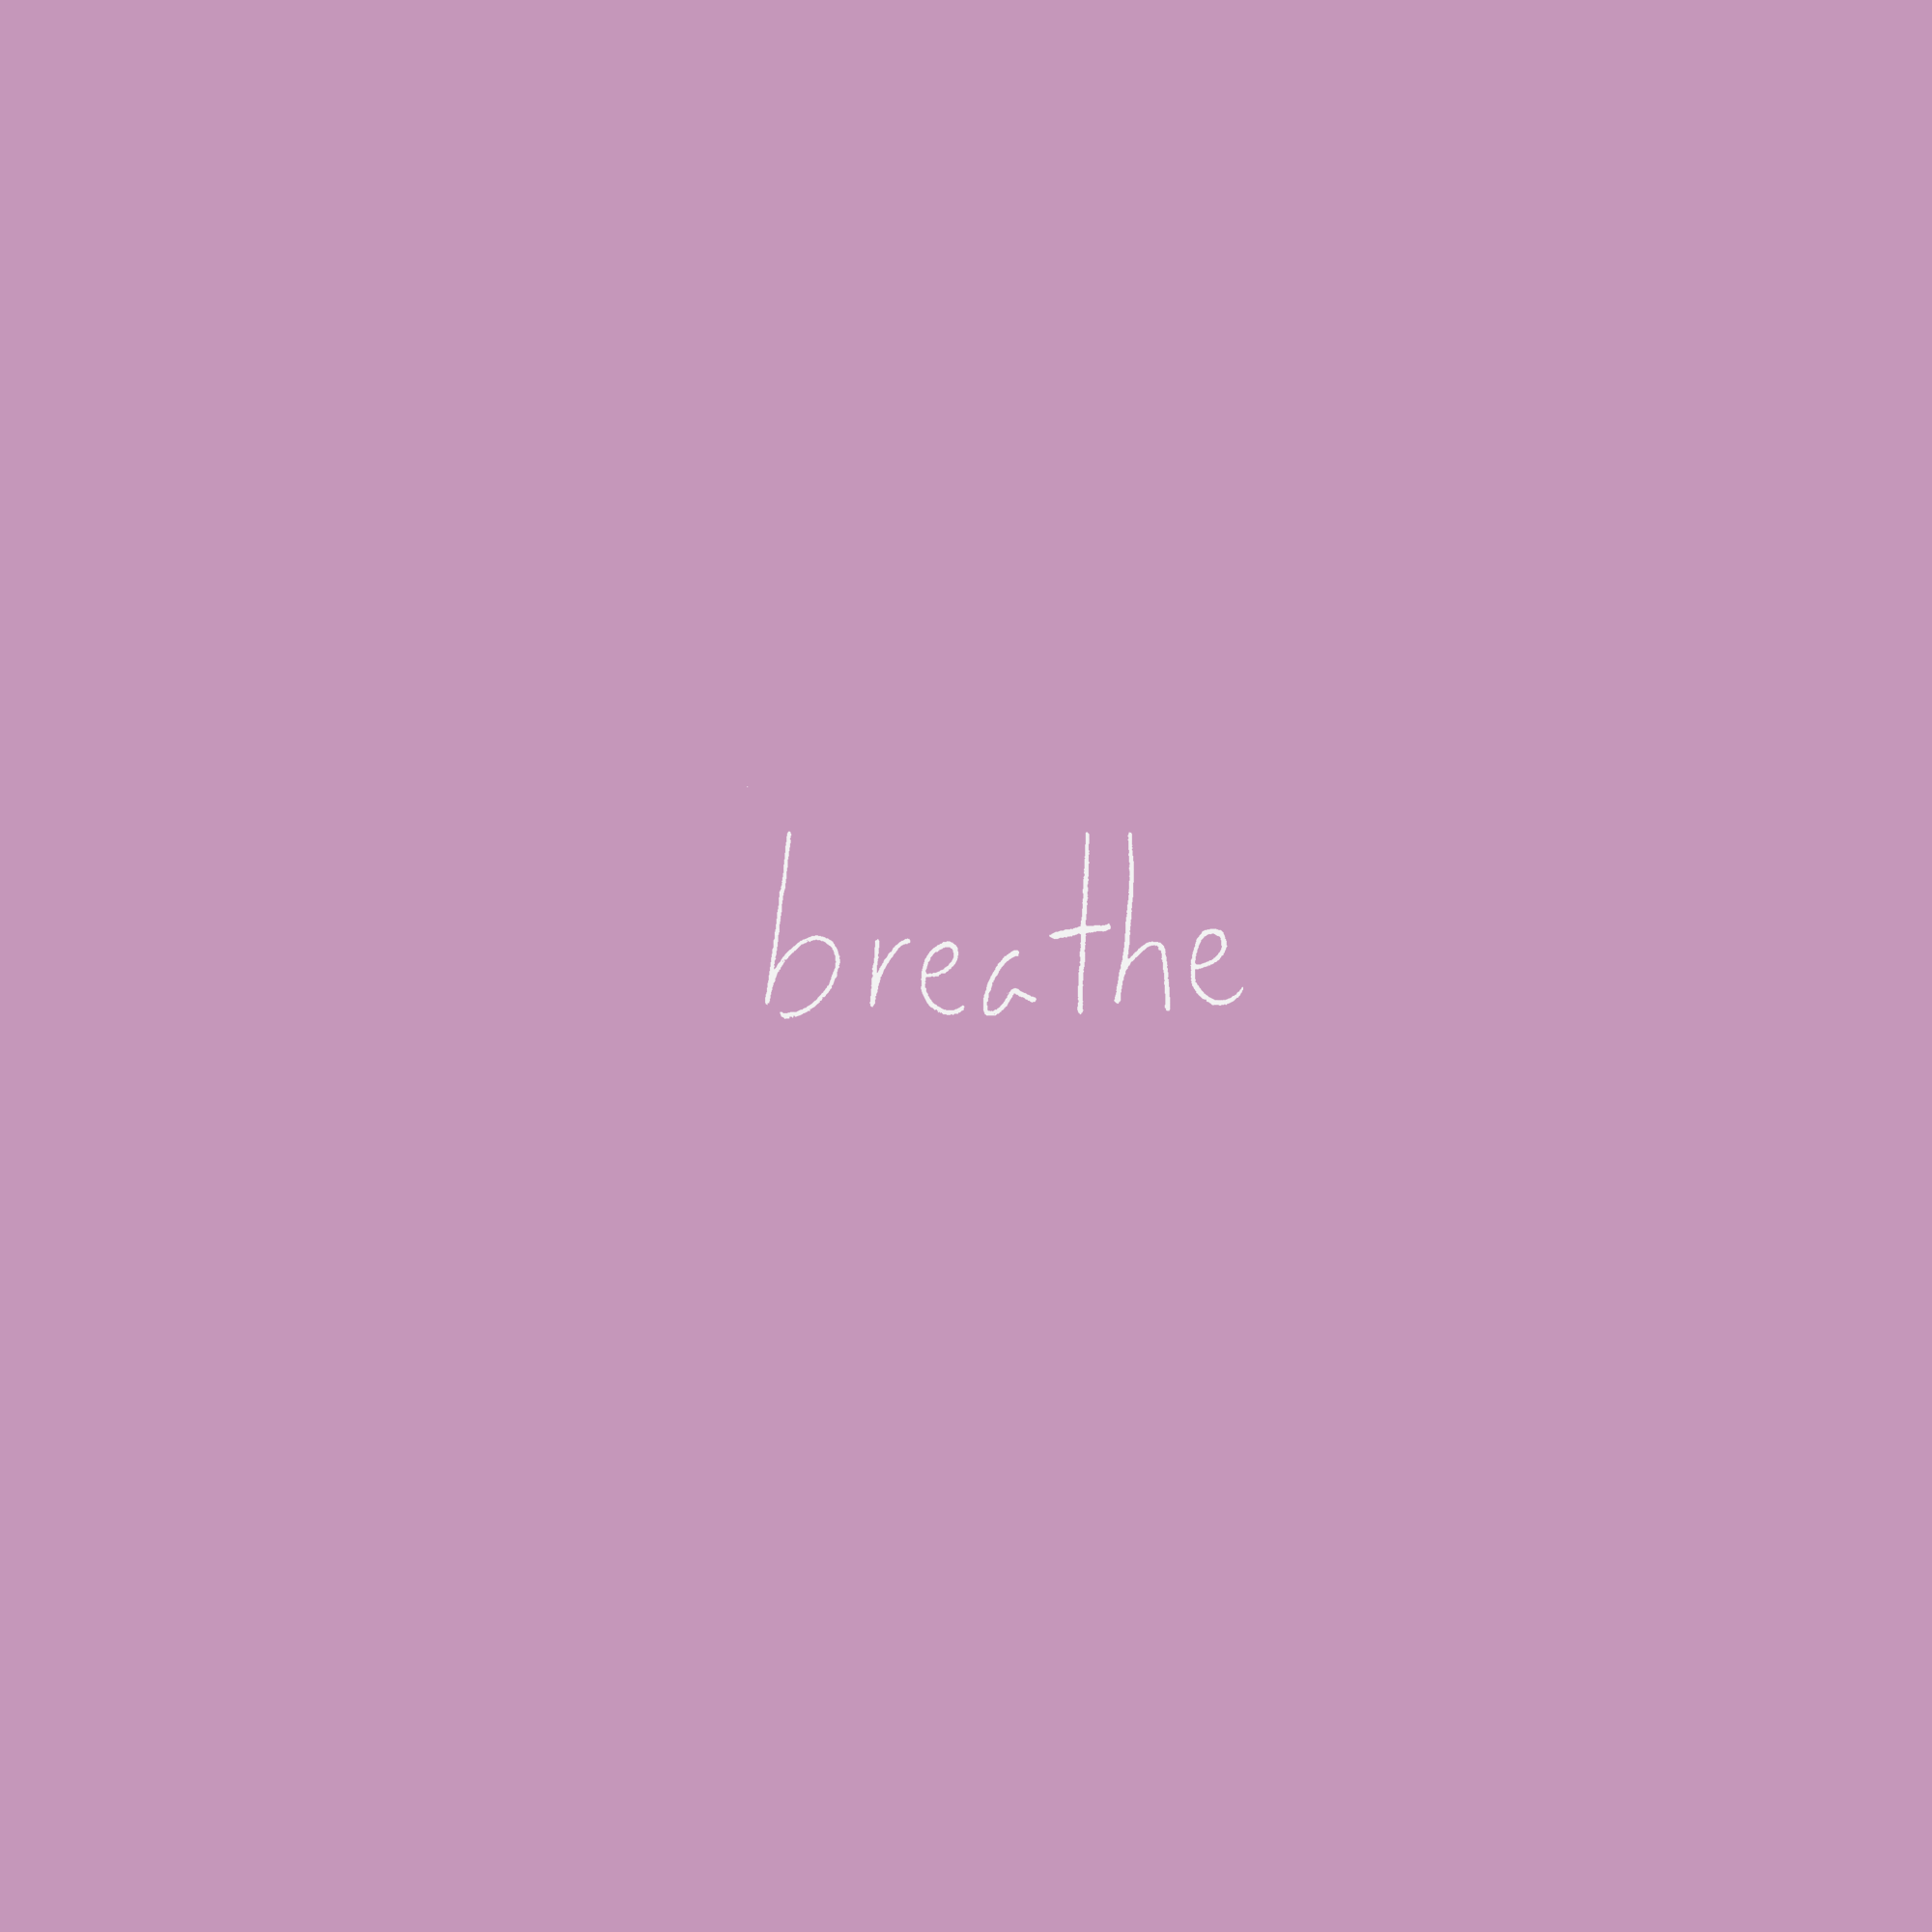 breathe-handlettering-square2.png